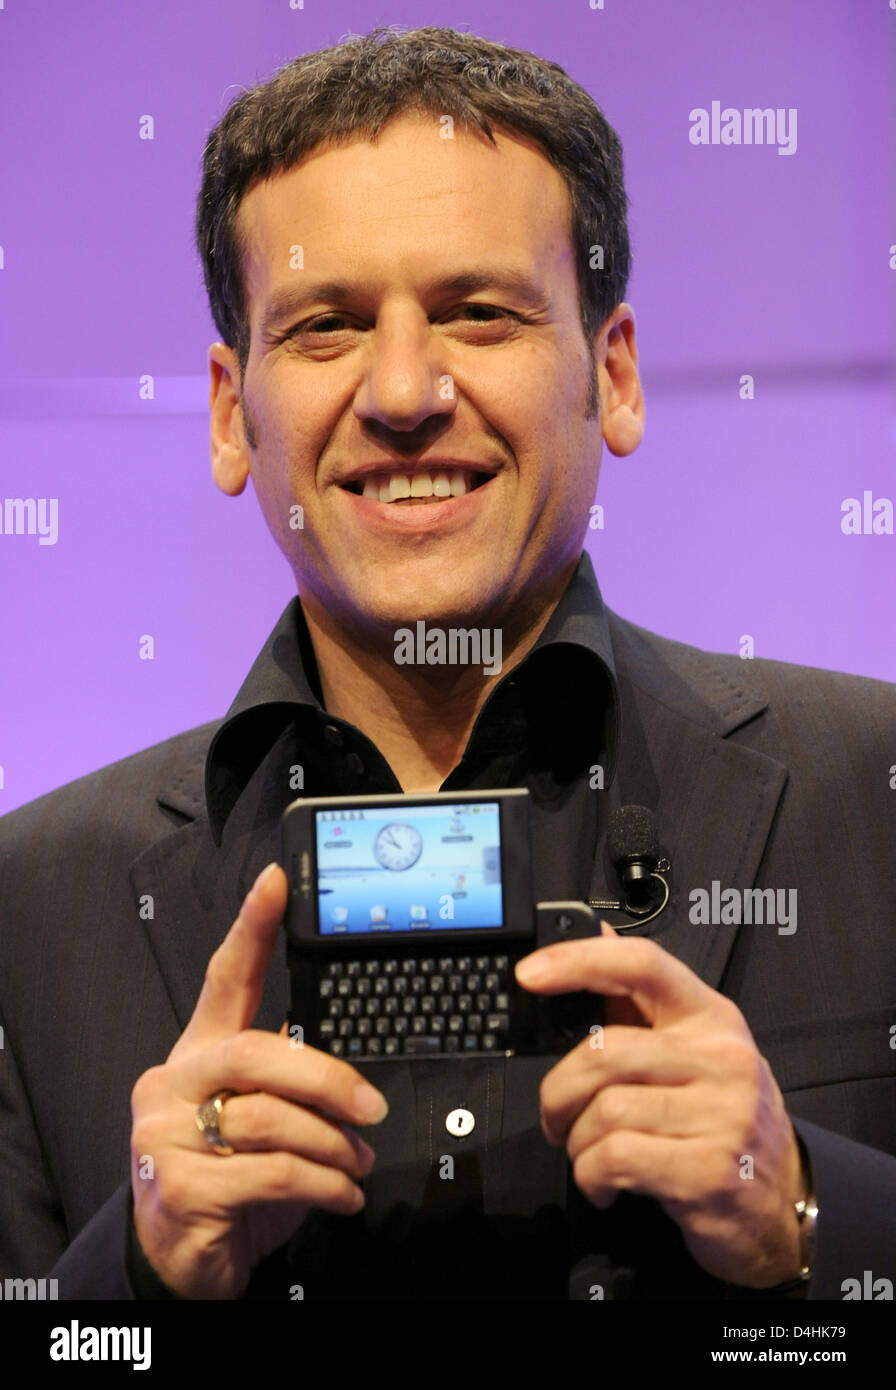 Chairman of German mobile network operator T-Mobile, Hamid Akhavan, introduces the new Google mobile phone G1 in - Stock Image